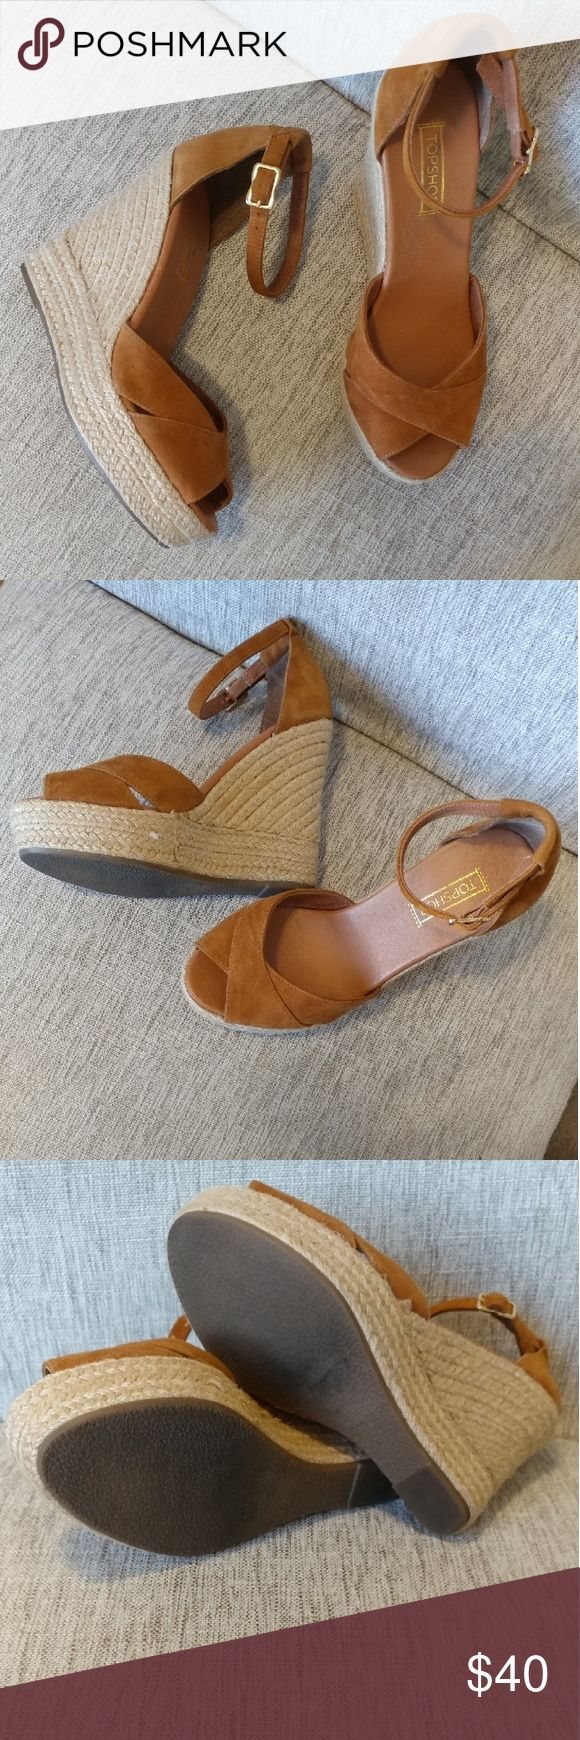 Topshop Suede Camel Espadrille Wedge Sandals So flattering with everything! Excellent condition camel suede Topshop Espadrille wedge sandals. Size 8 Topshop Shoes